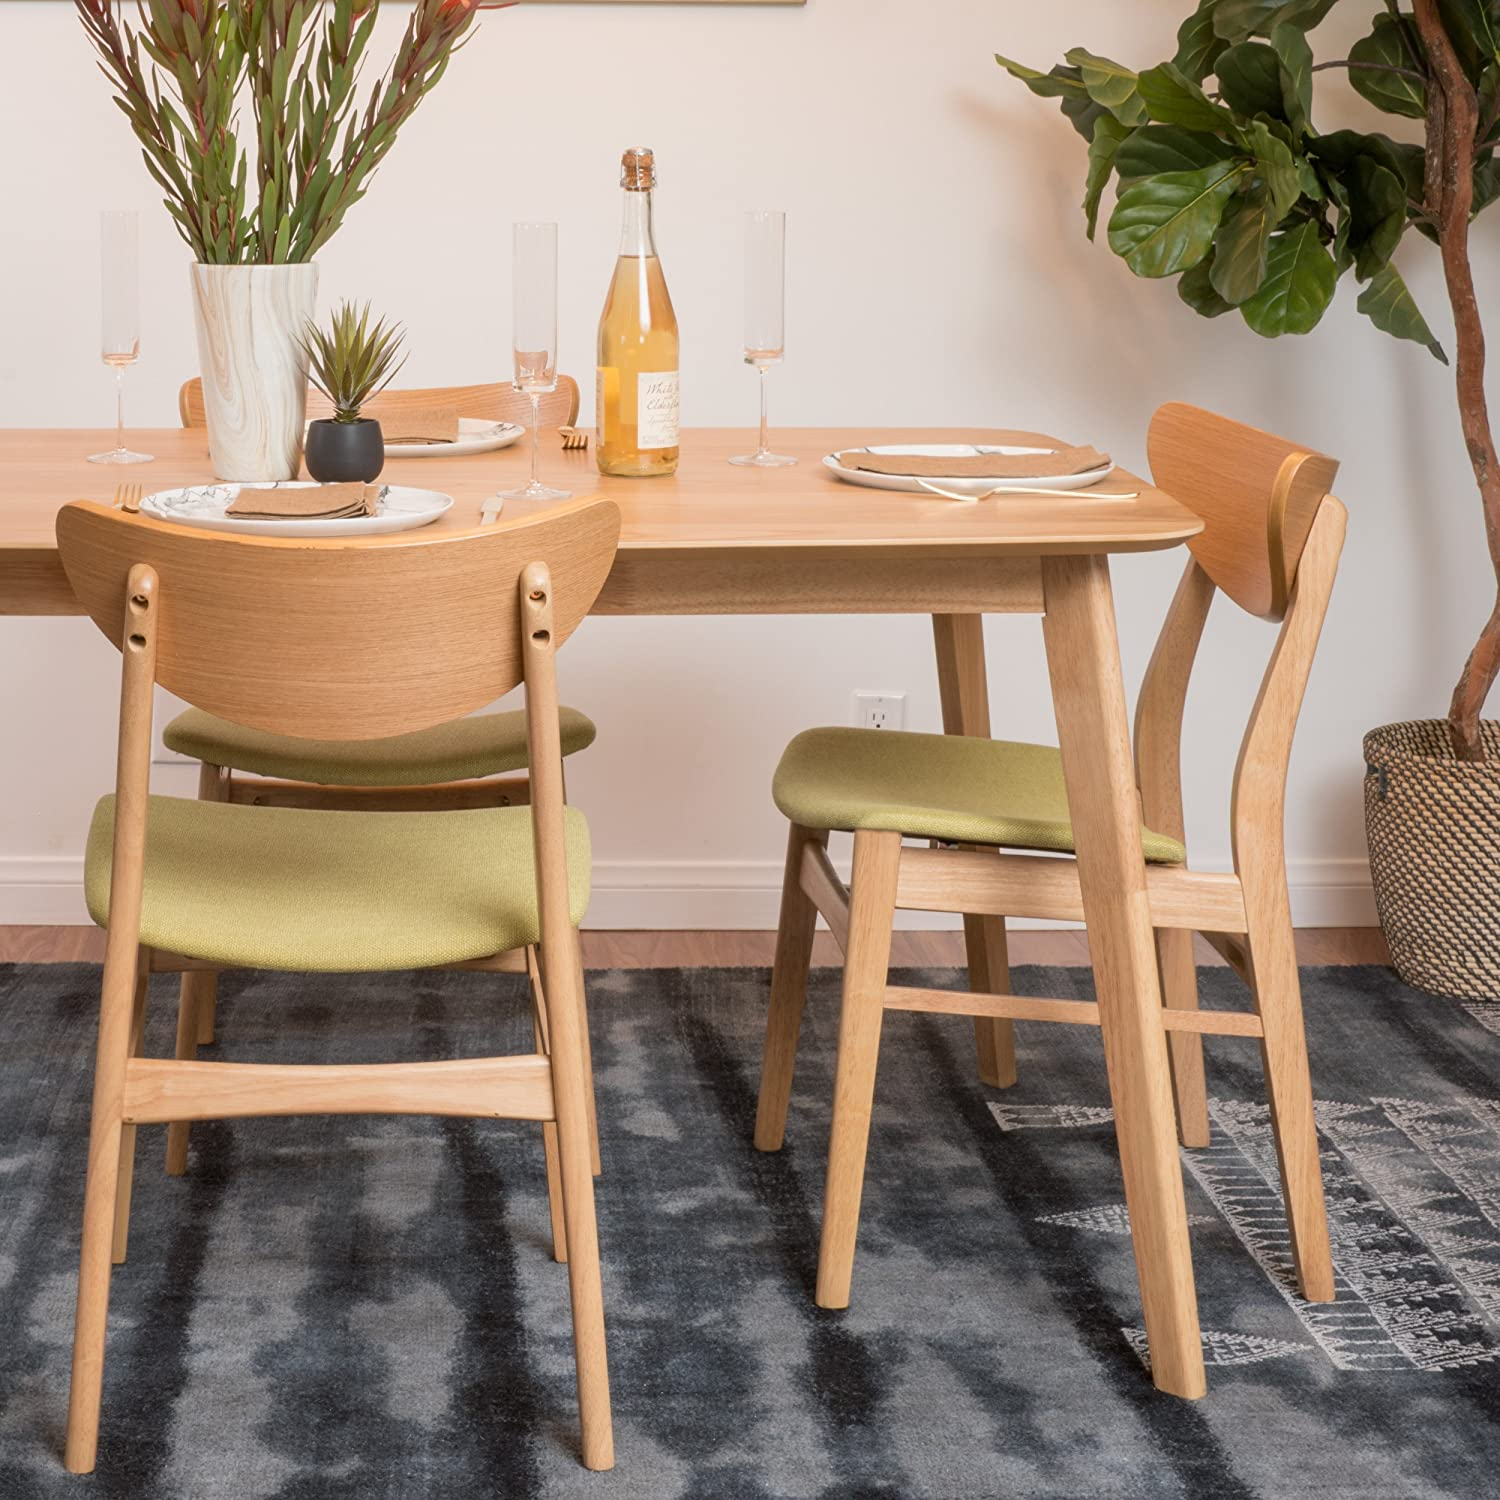 Christopher Knight Home 298997 Anise Dining Chair (Set of 2), Green Tea